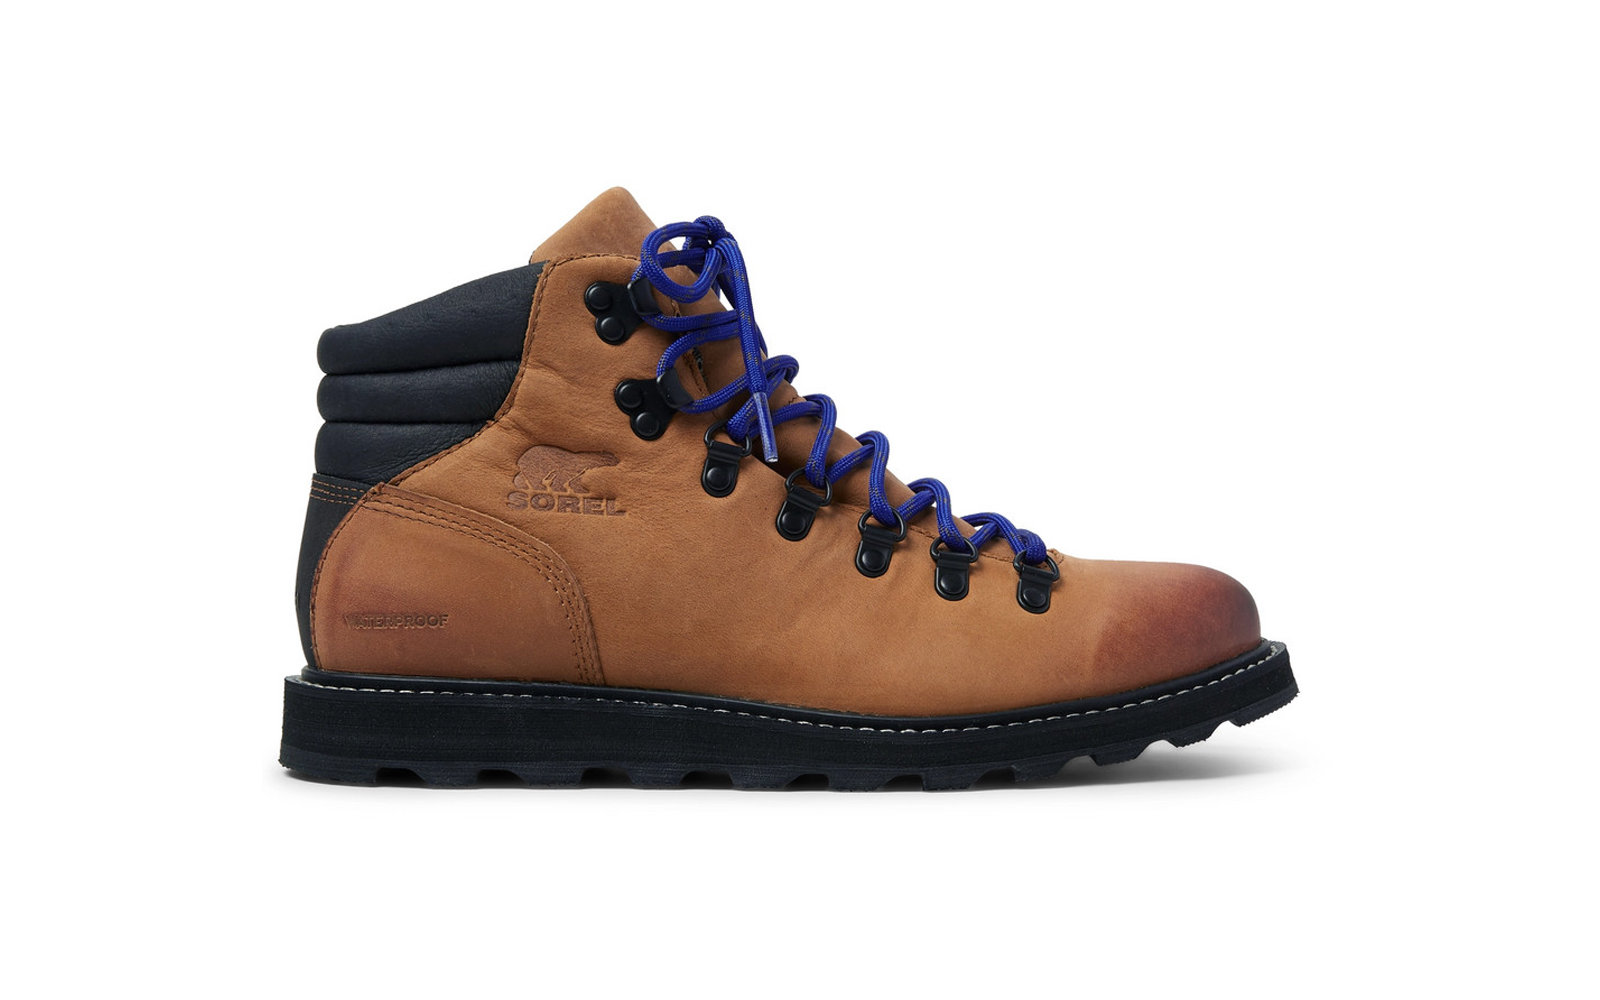 Best Hiking Boots  Sorel Madson Hiker Waterproof Leather And Rubber-Trimmed  Nubuck Boots a40b0050ba02